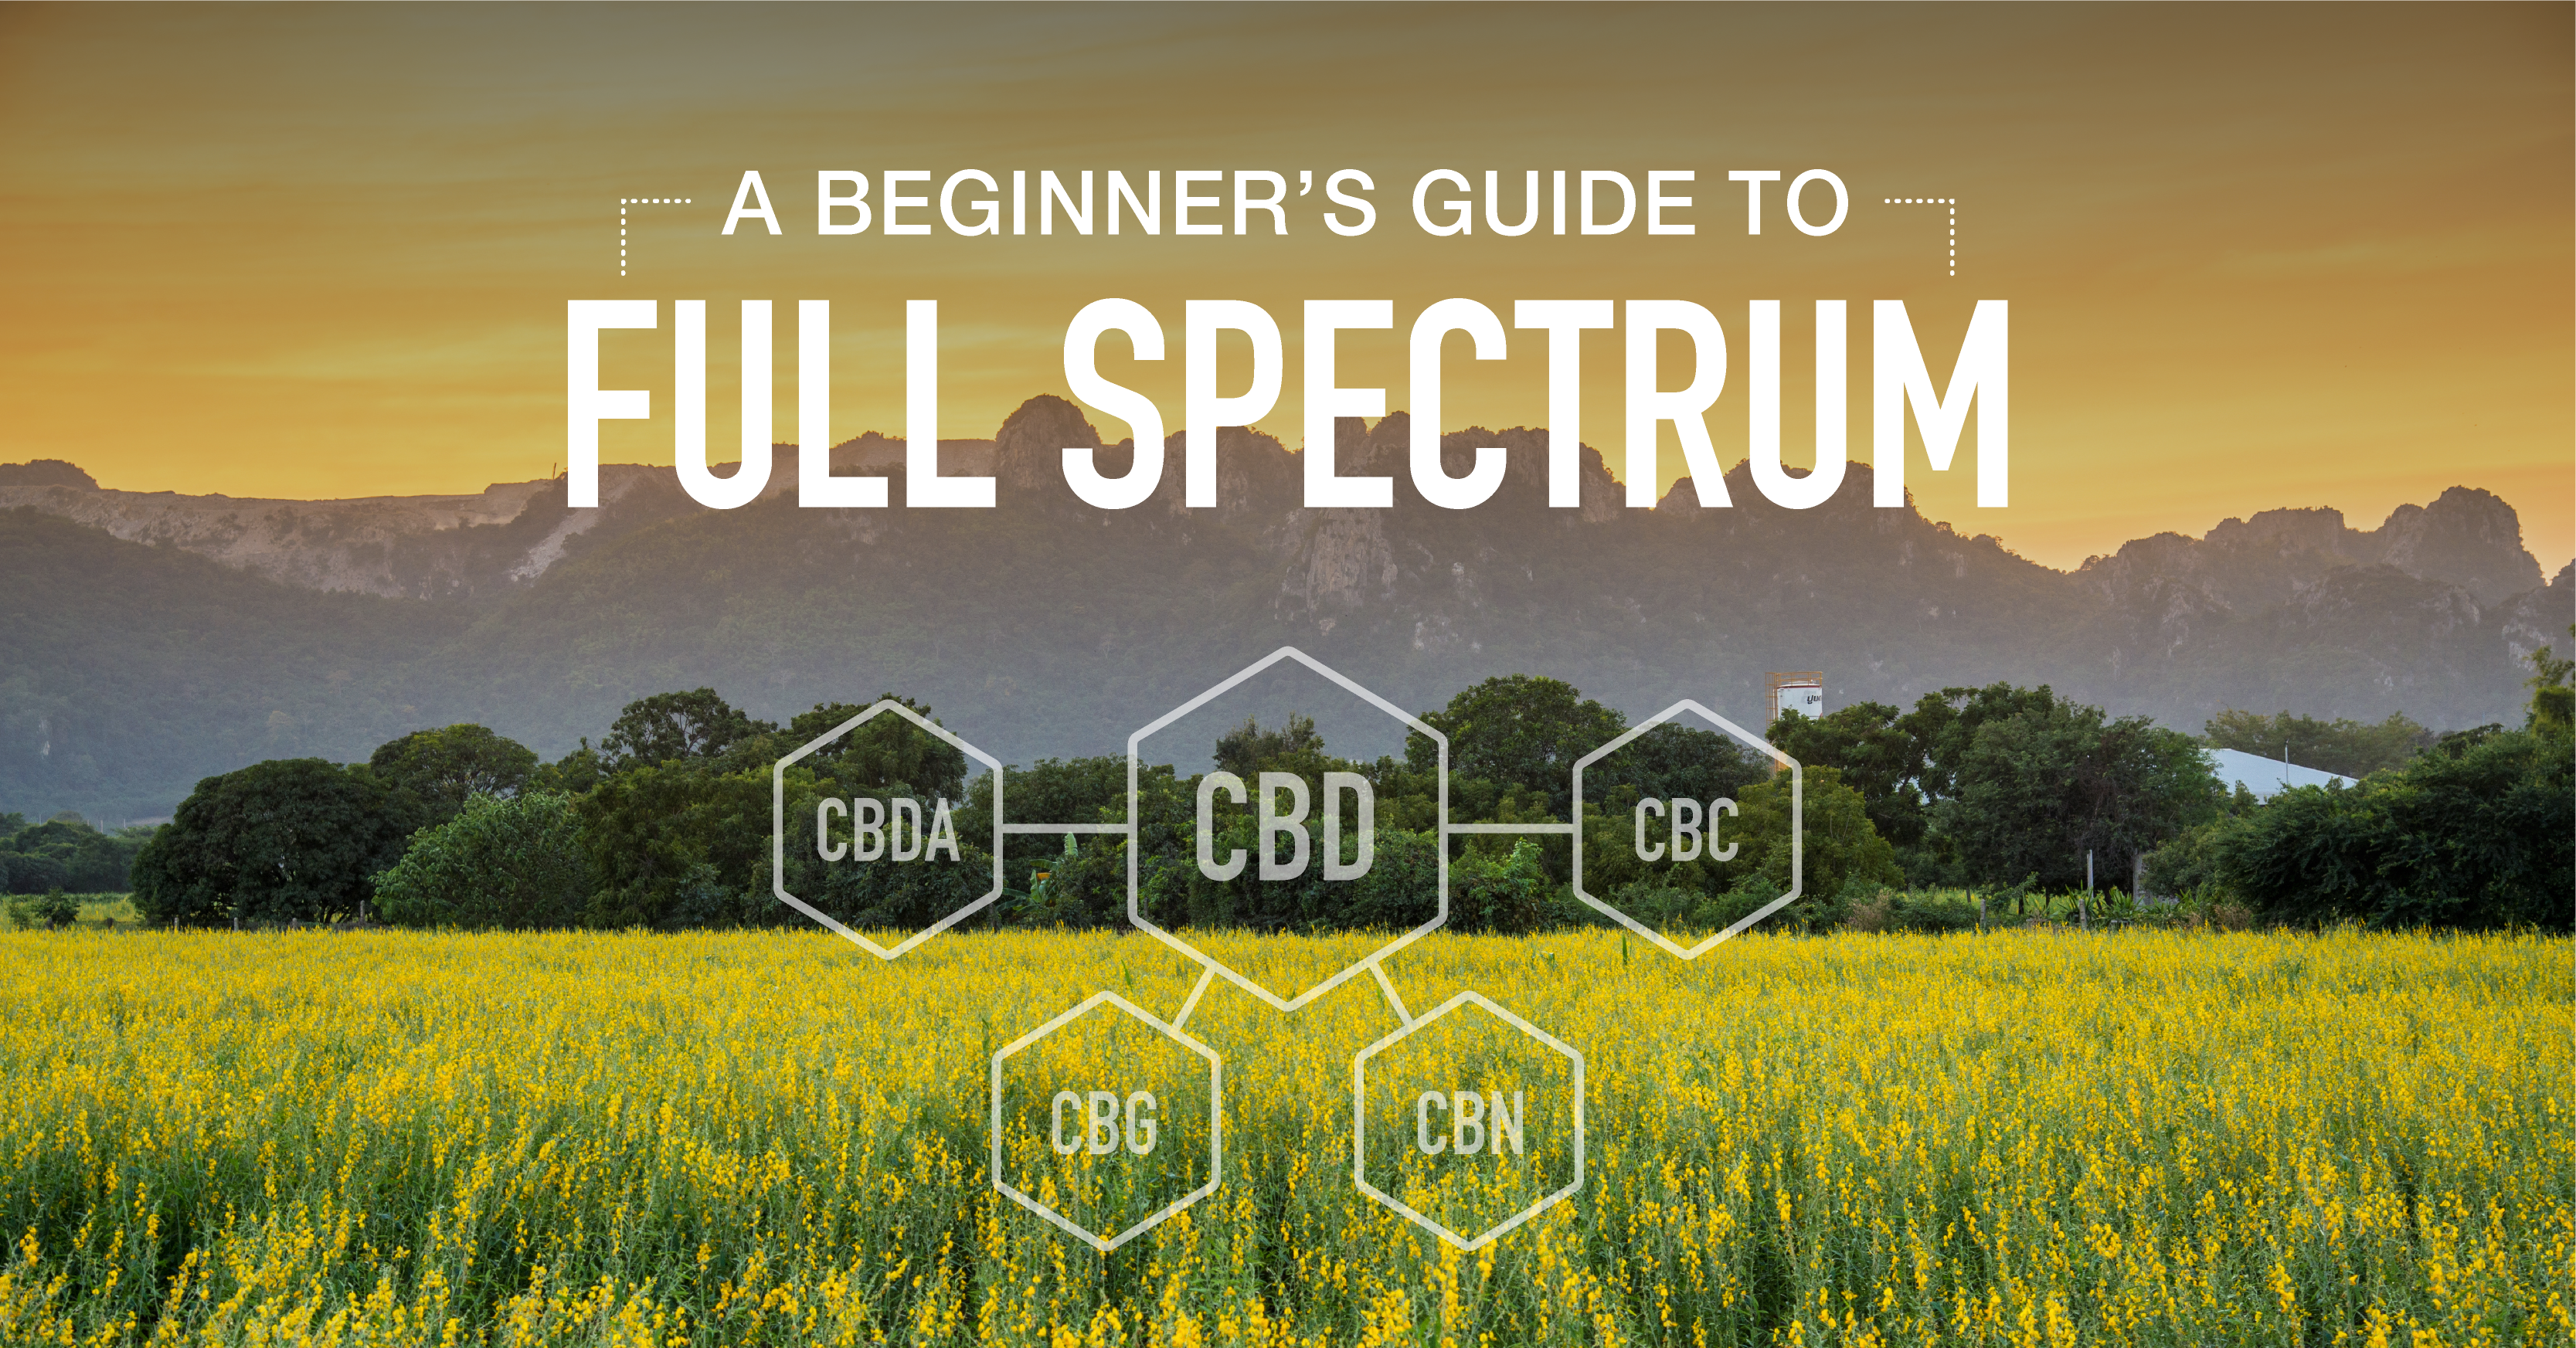 A Beginners Guide to Full Spectrum CBD Extraction